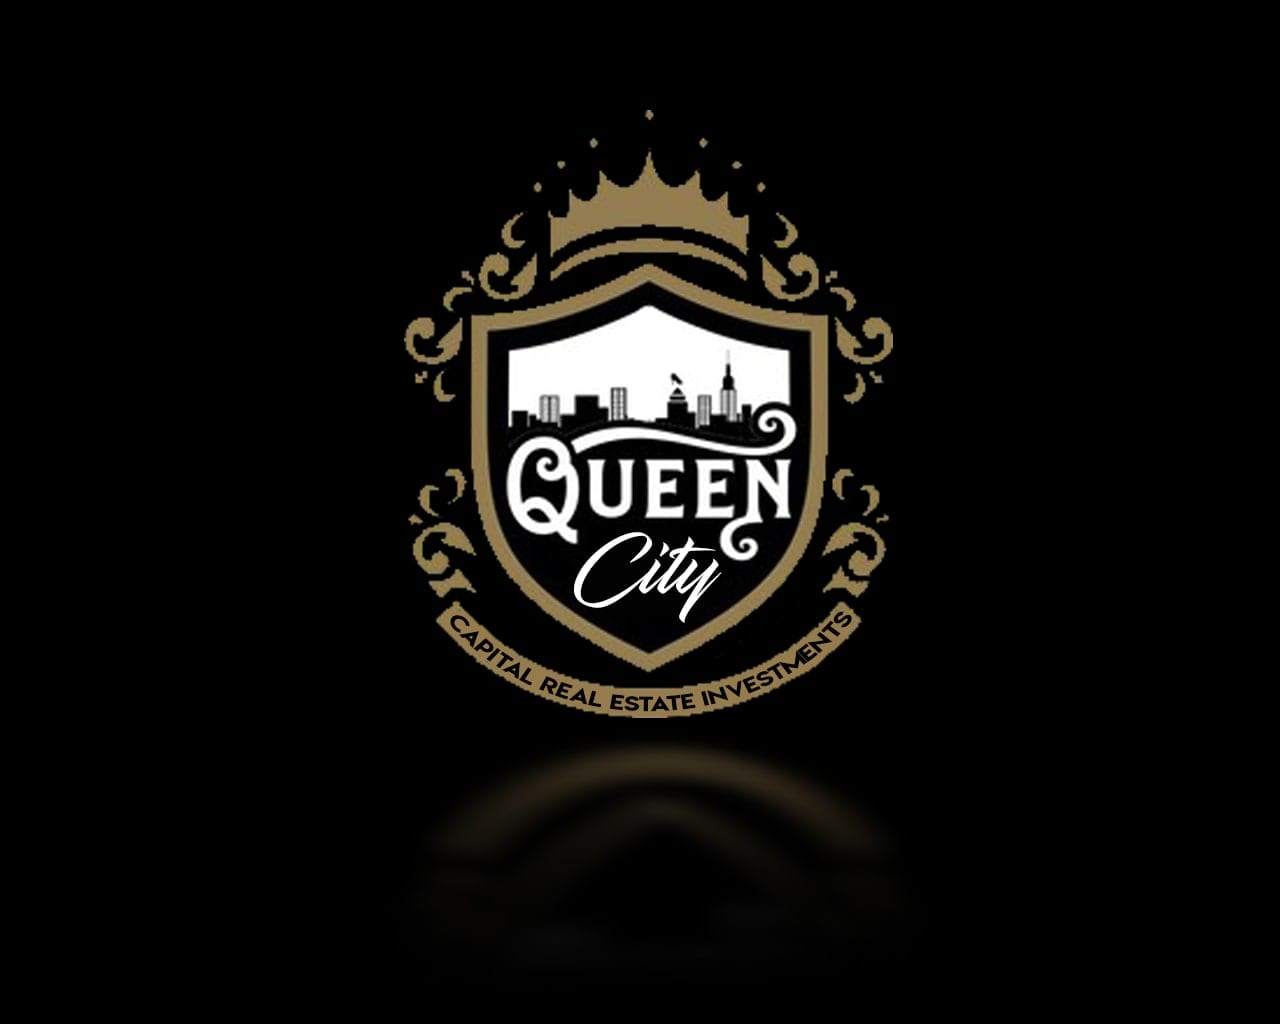 Queen City Capital Investments Group